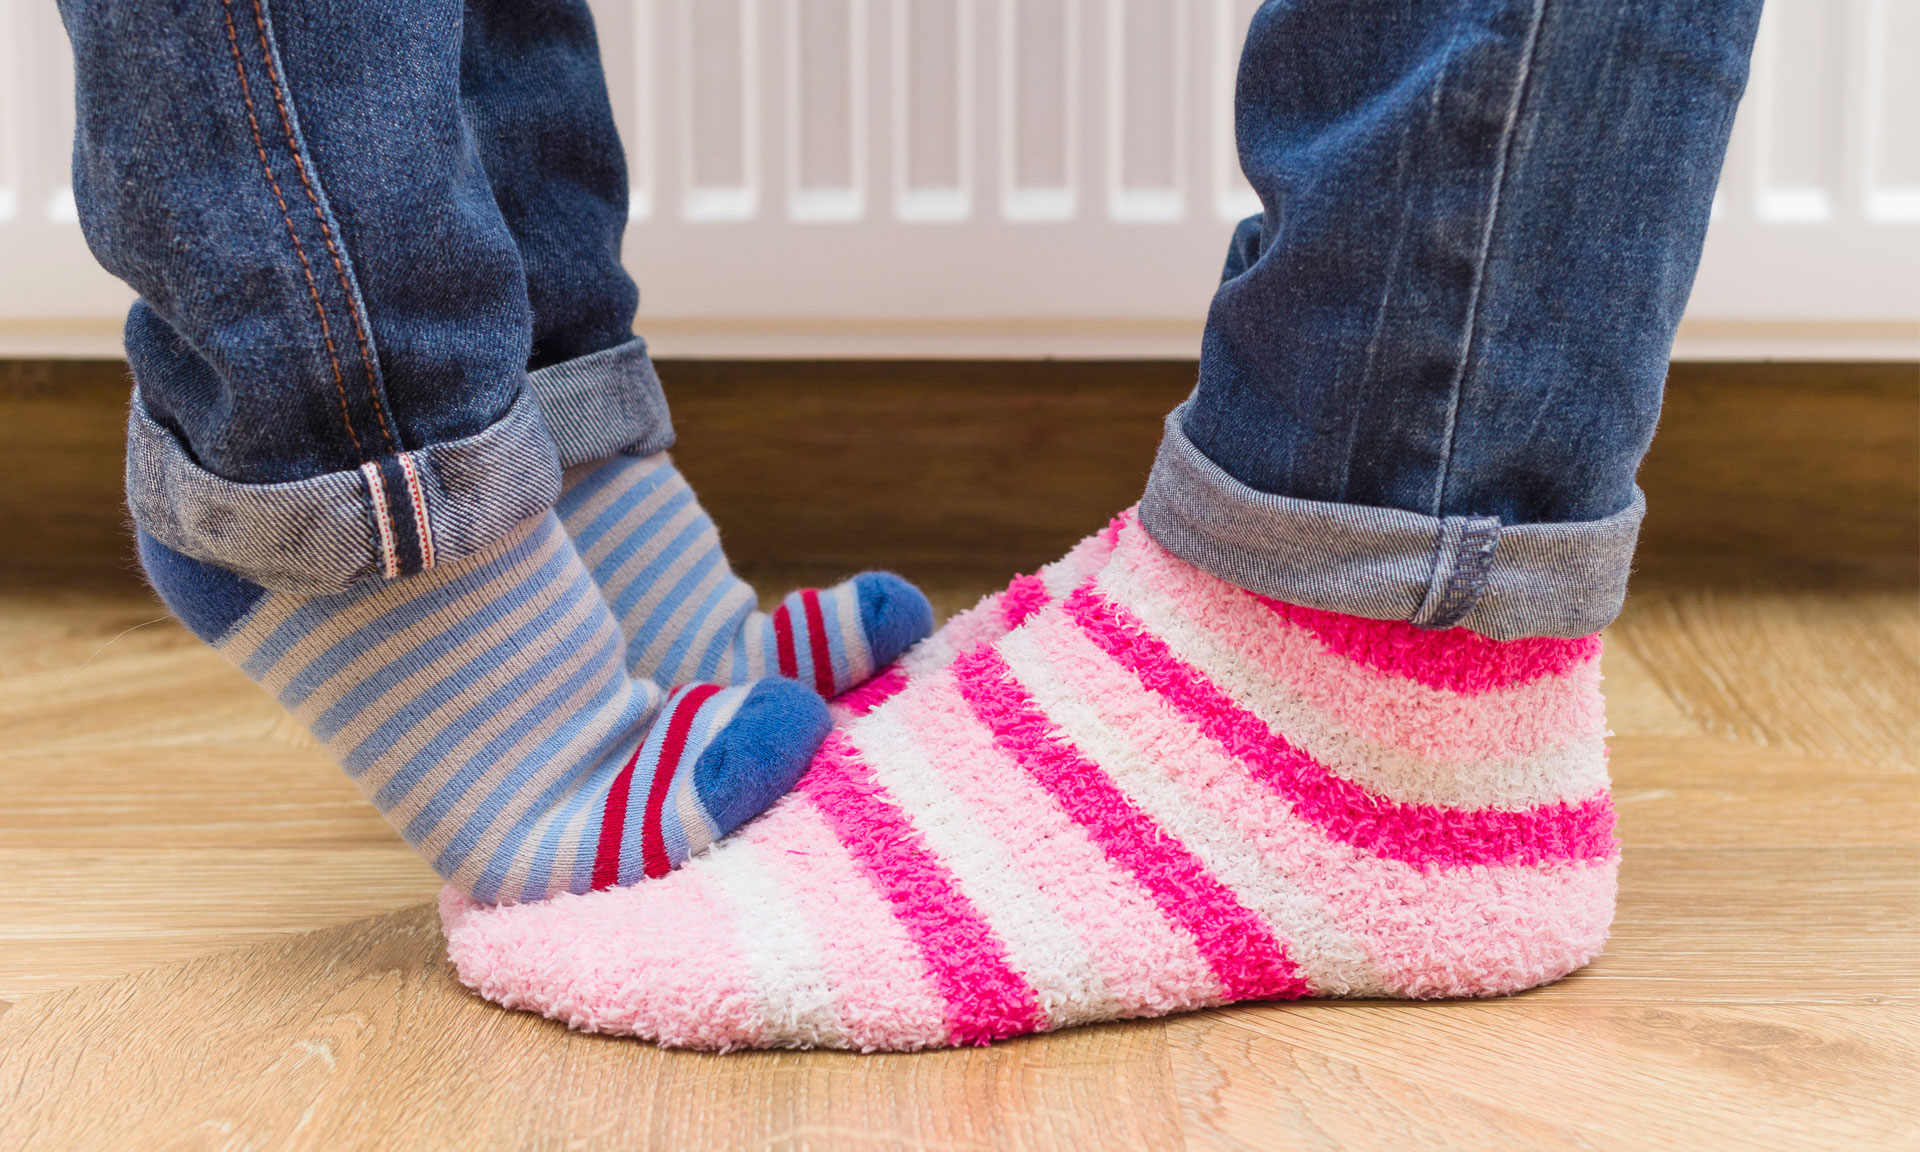 Child's feet standing on adult's feet in warm socks